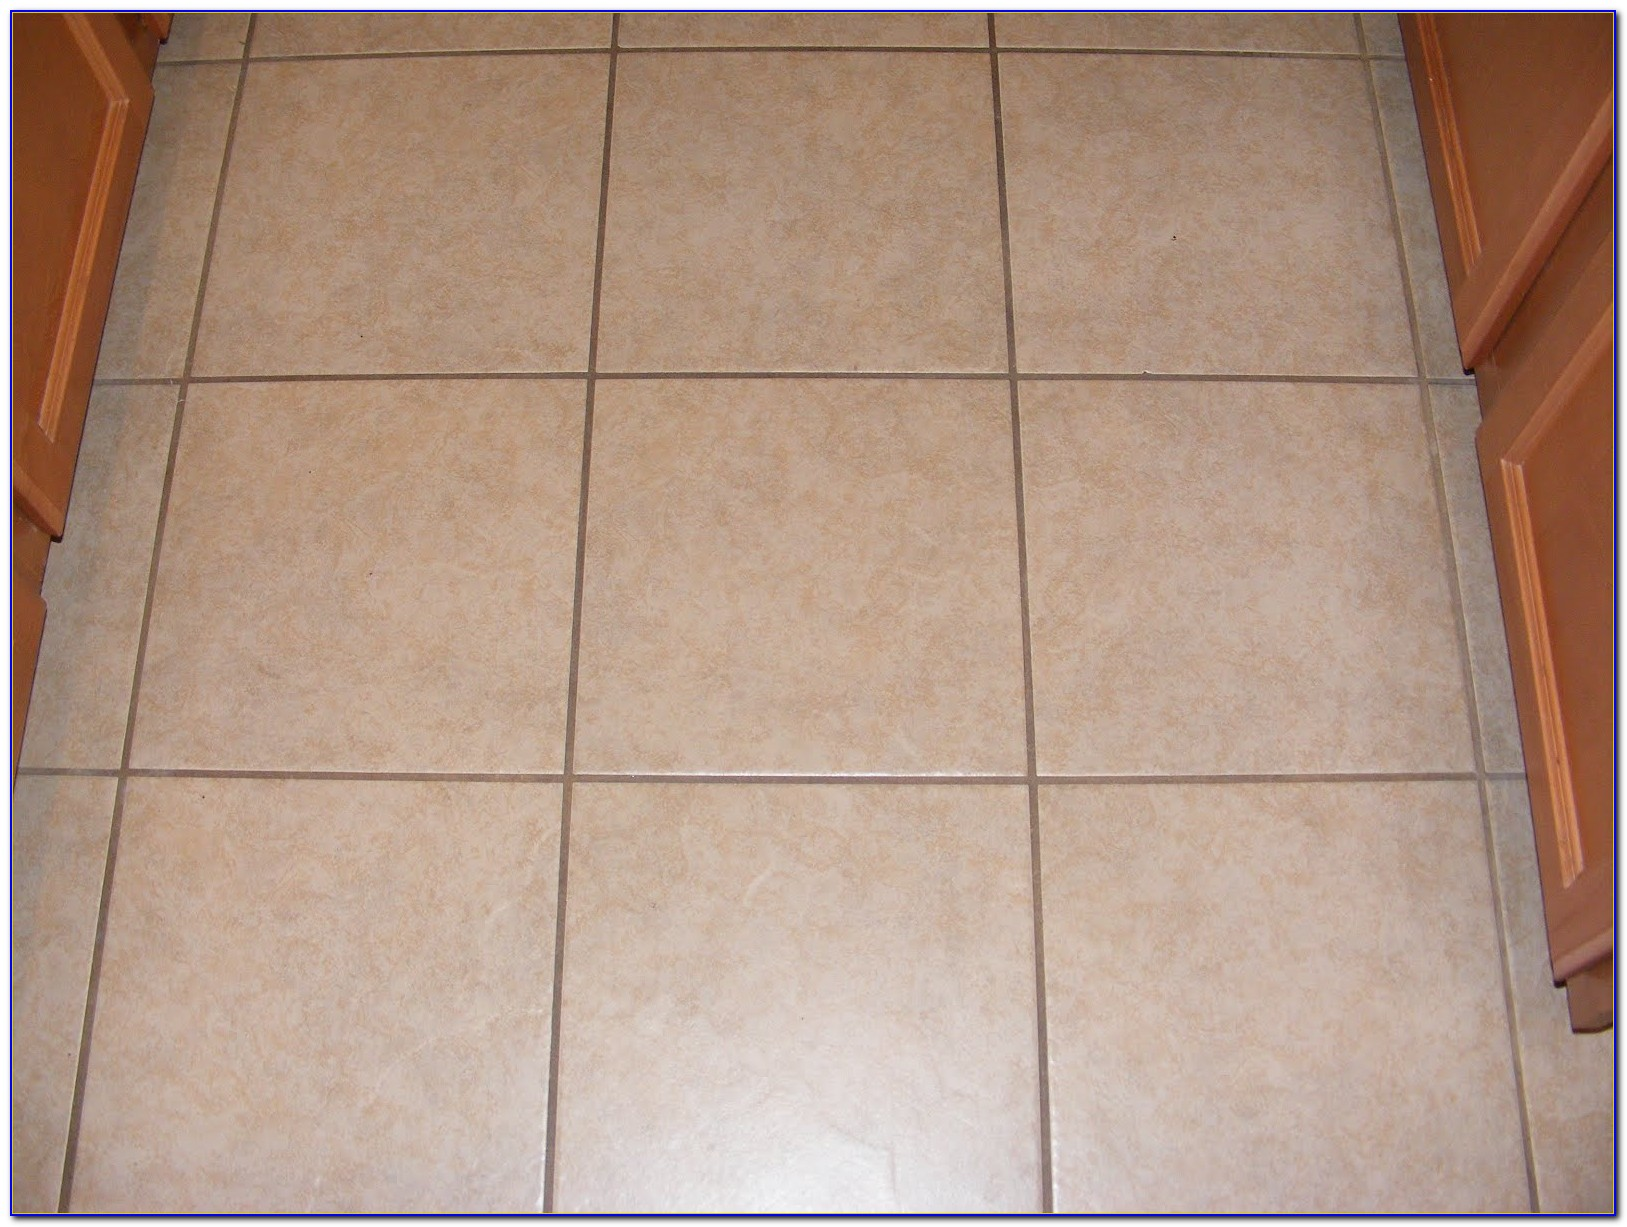 Best mop for tile floors and grout download page home for Best mop for tile floor grout